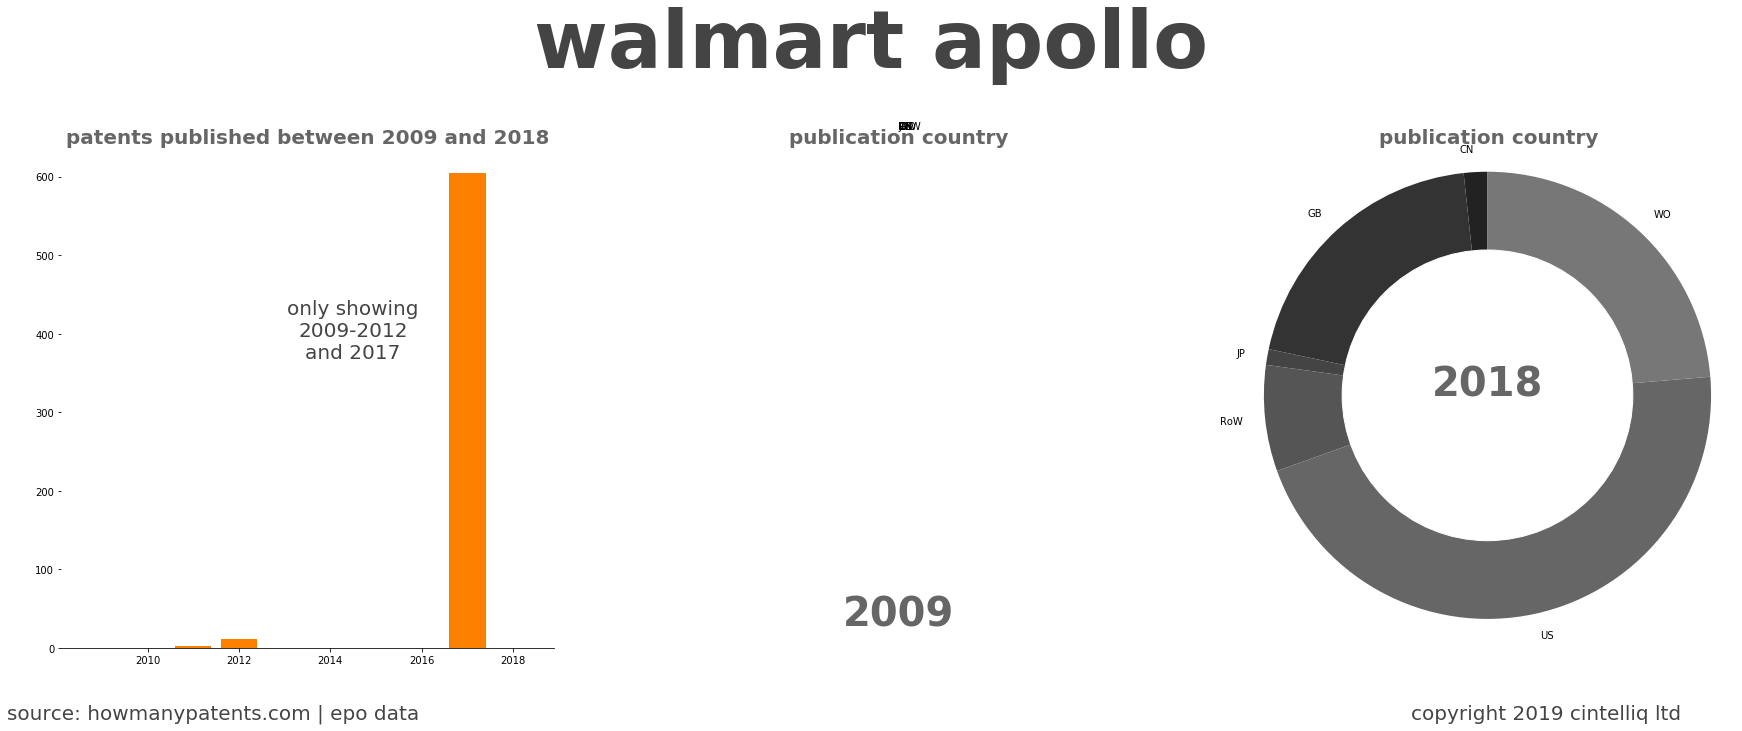 summary of patents for Walmart Apollo